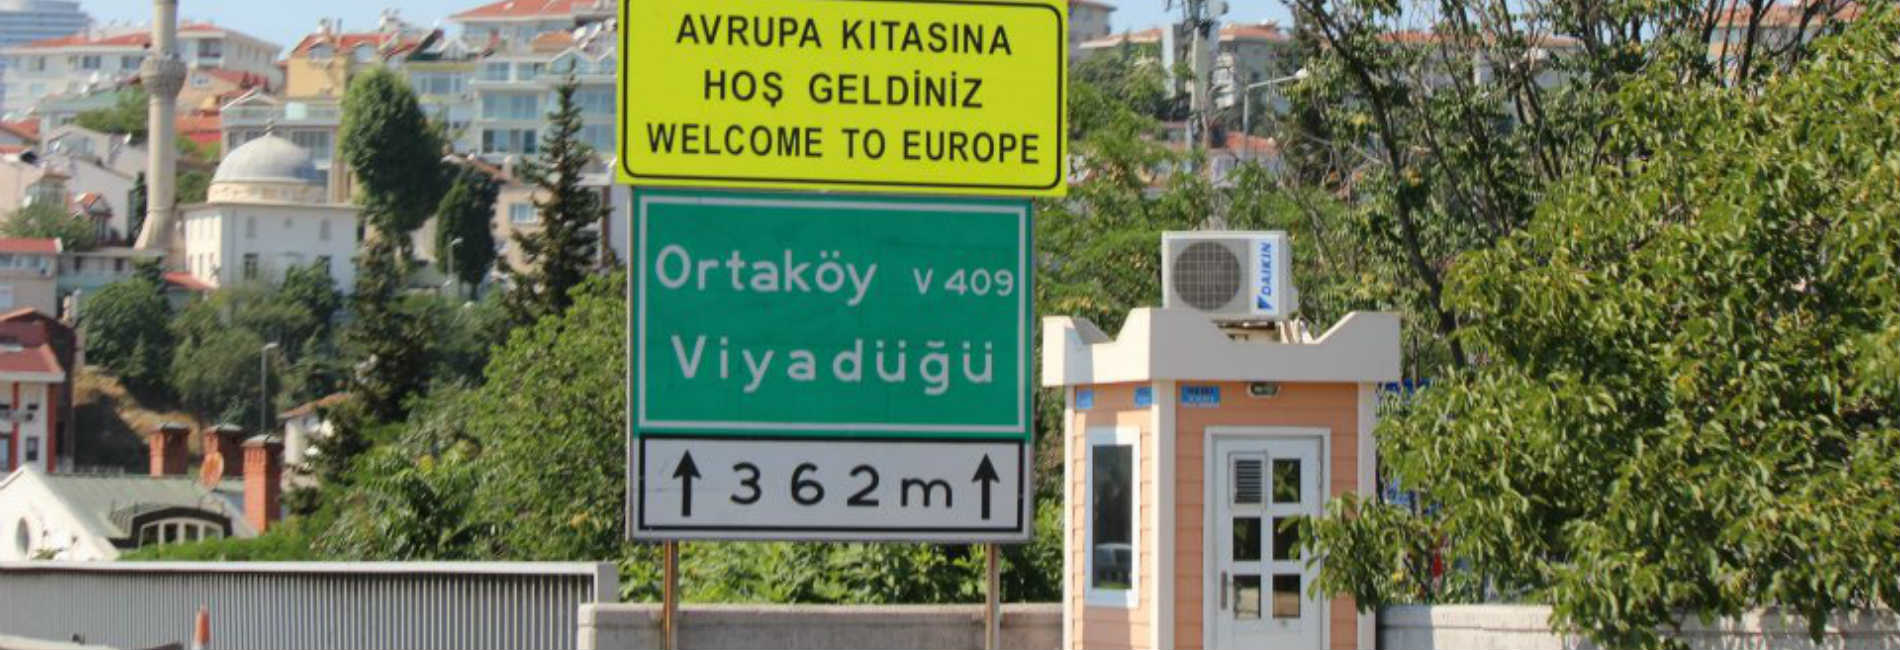 Entry Point To Europe